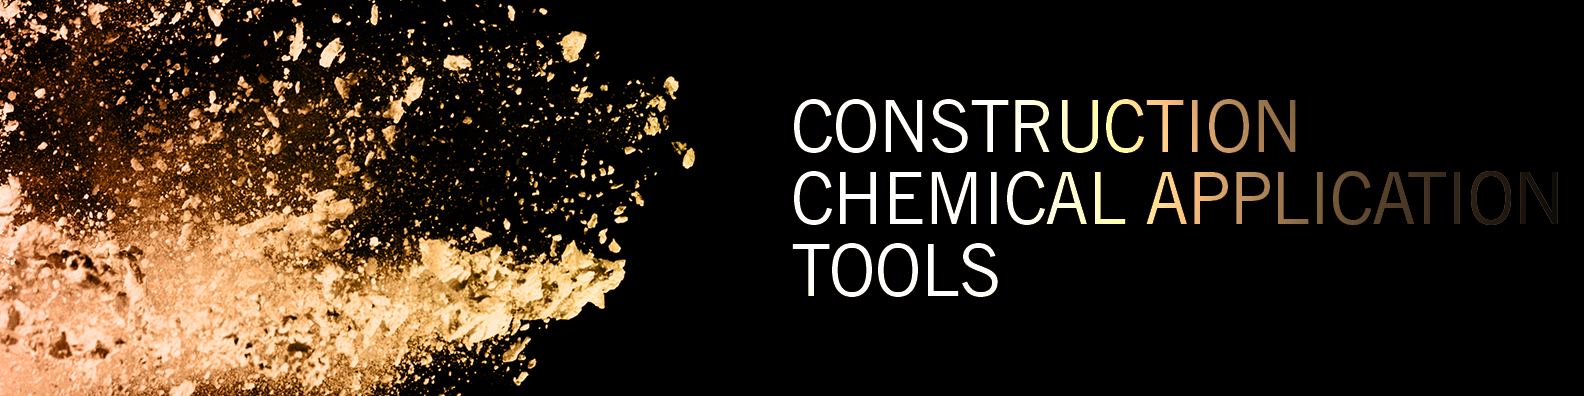 Construction Chemical Application Tools